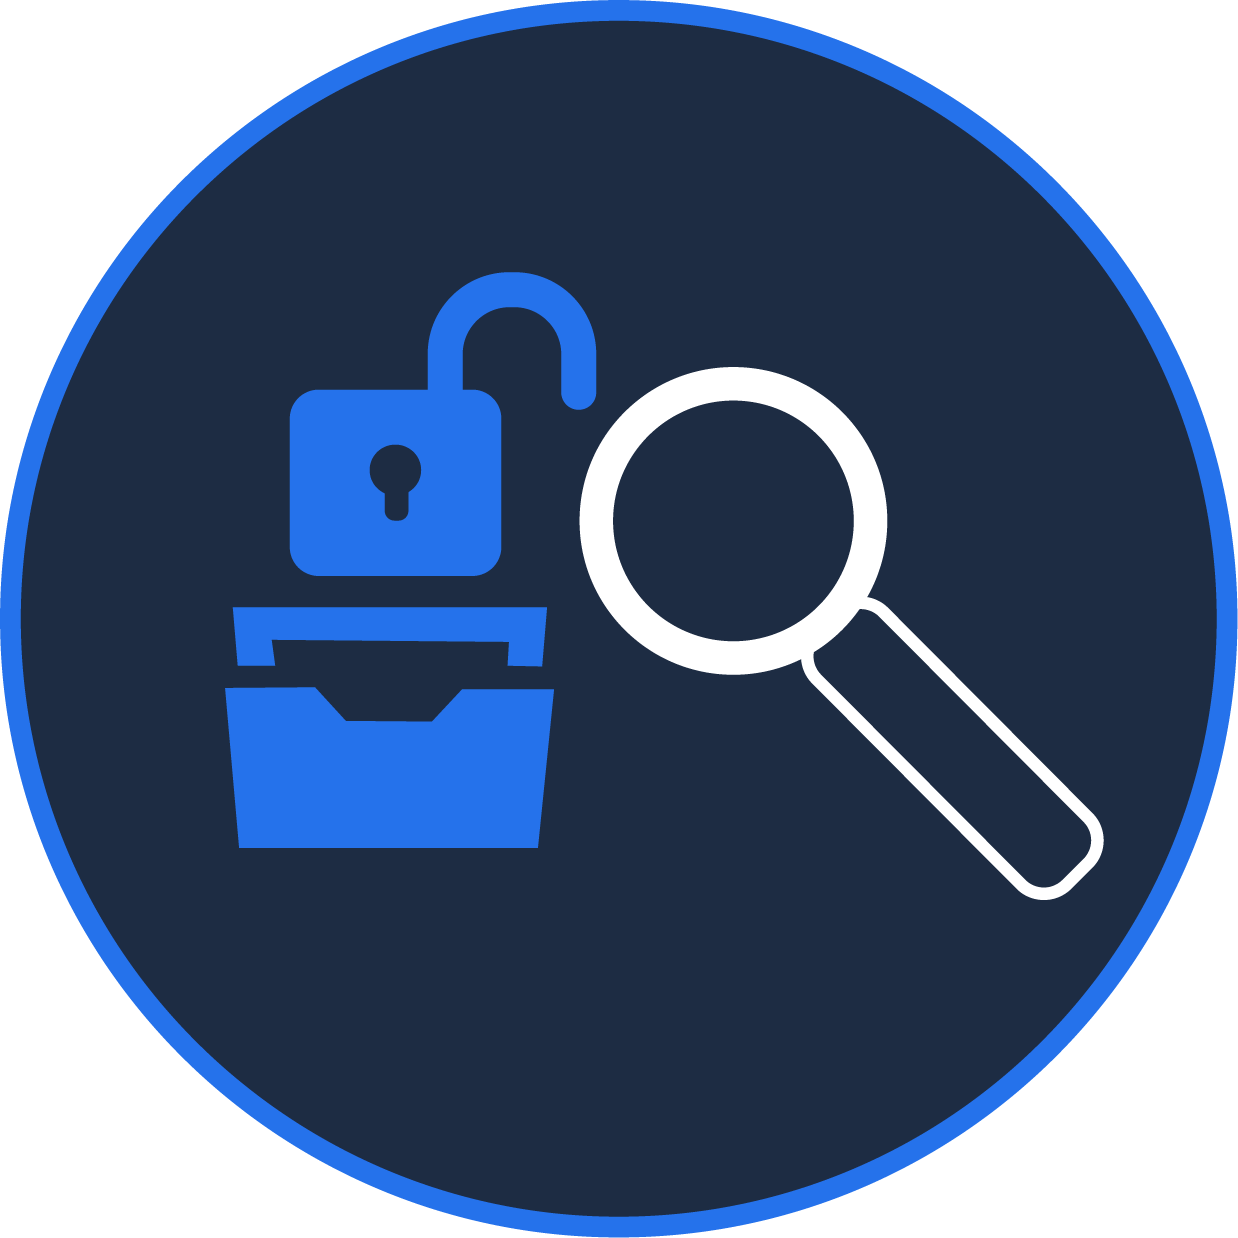 Privacy policies badge